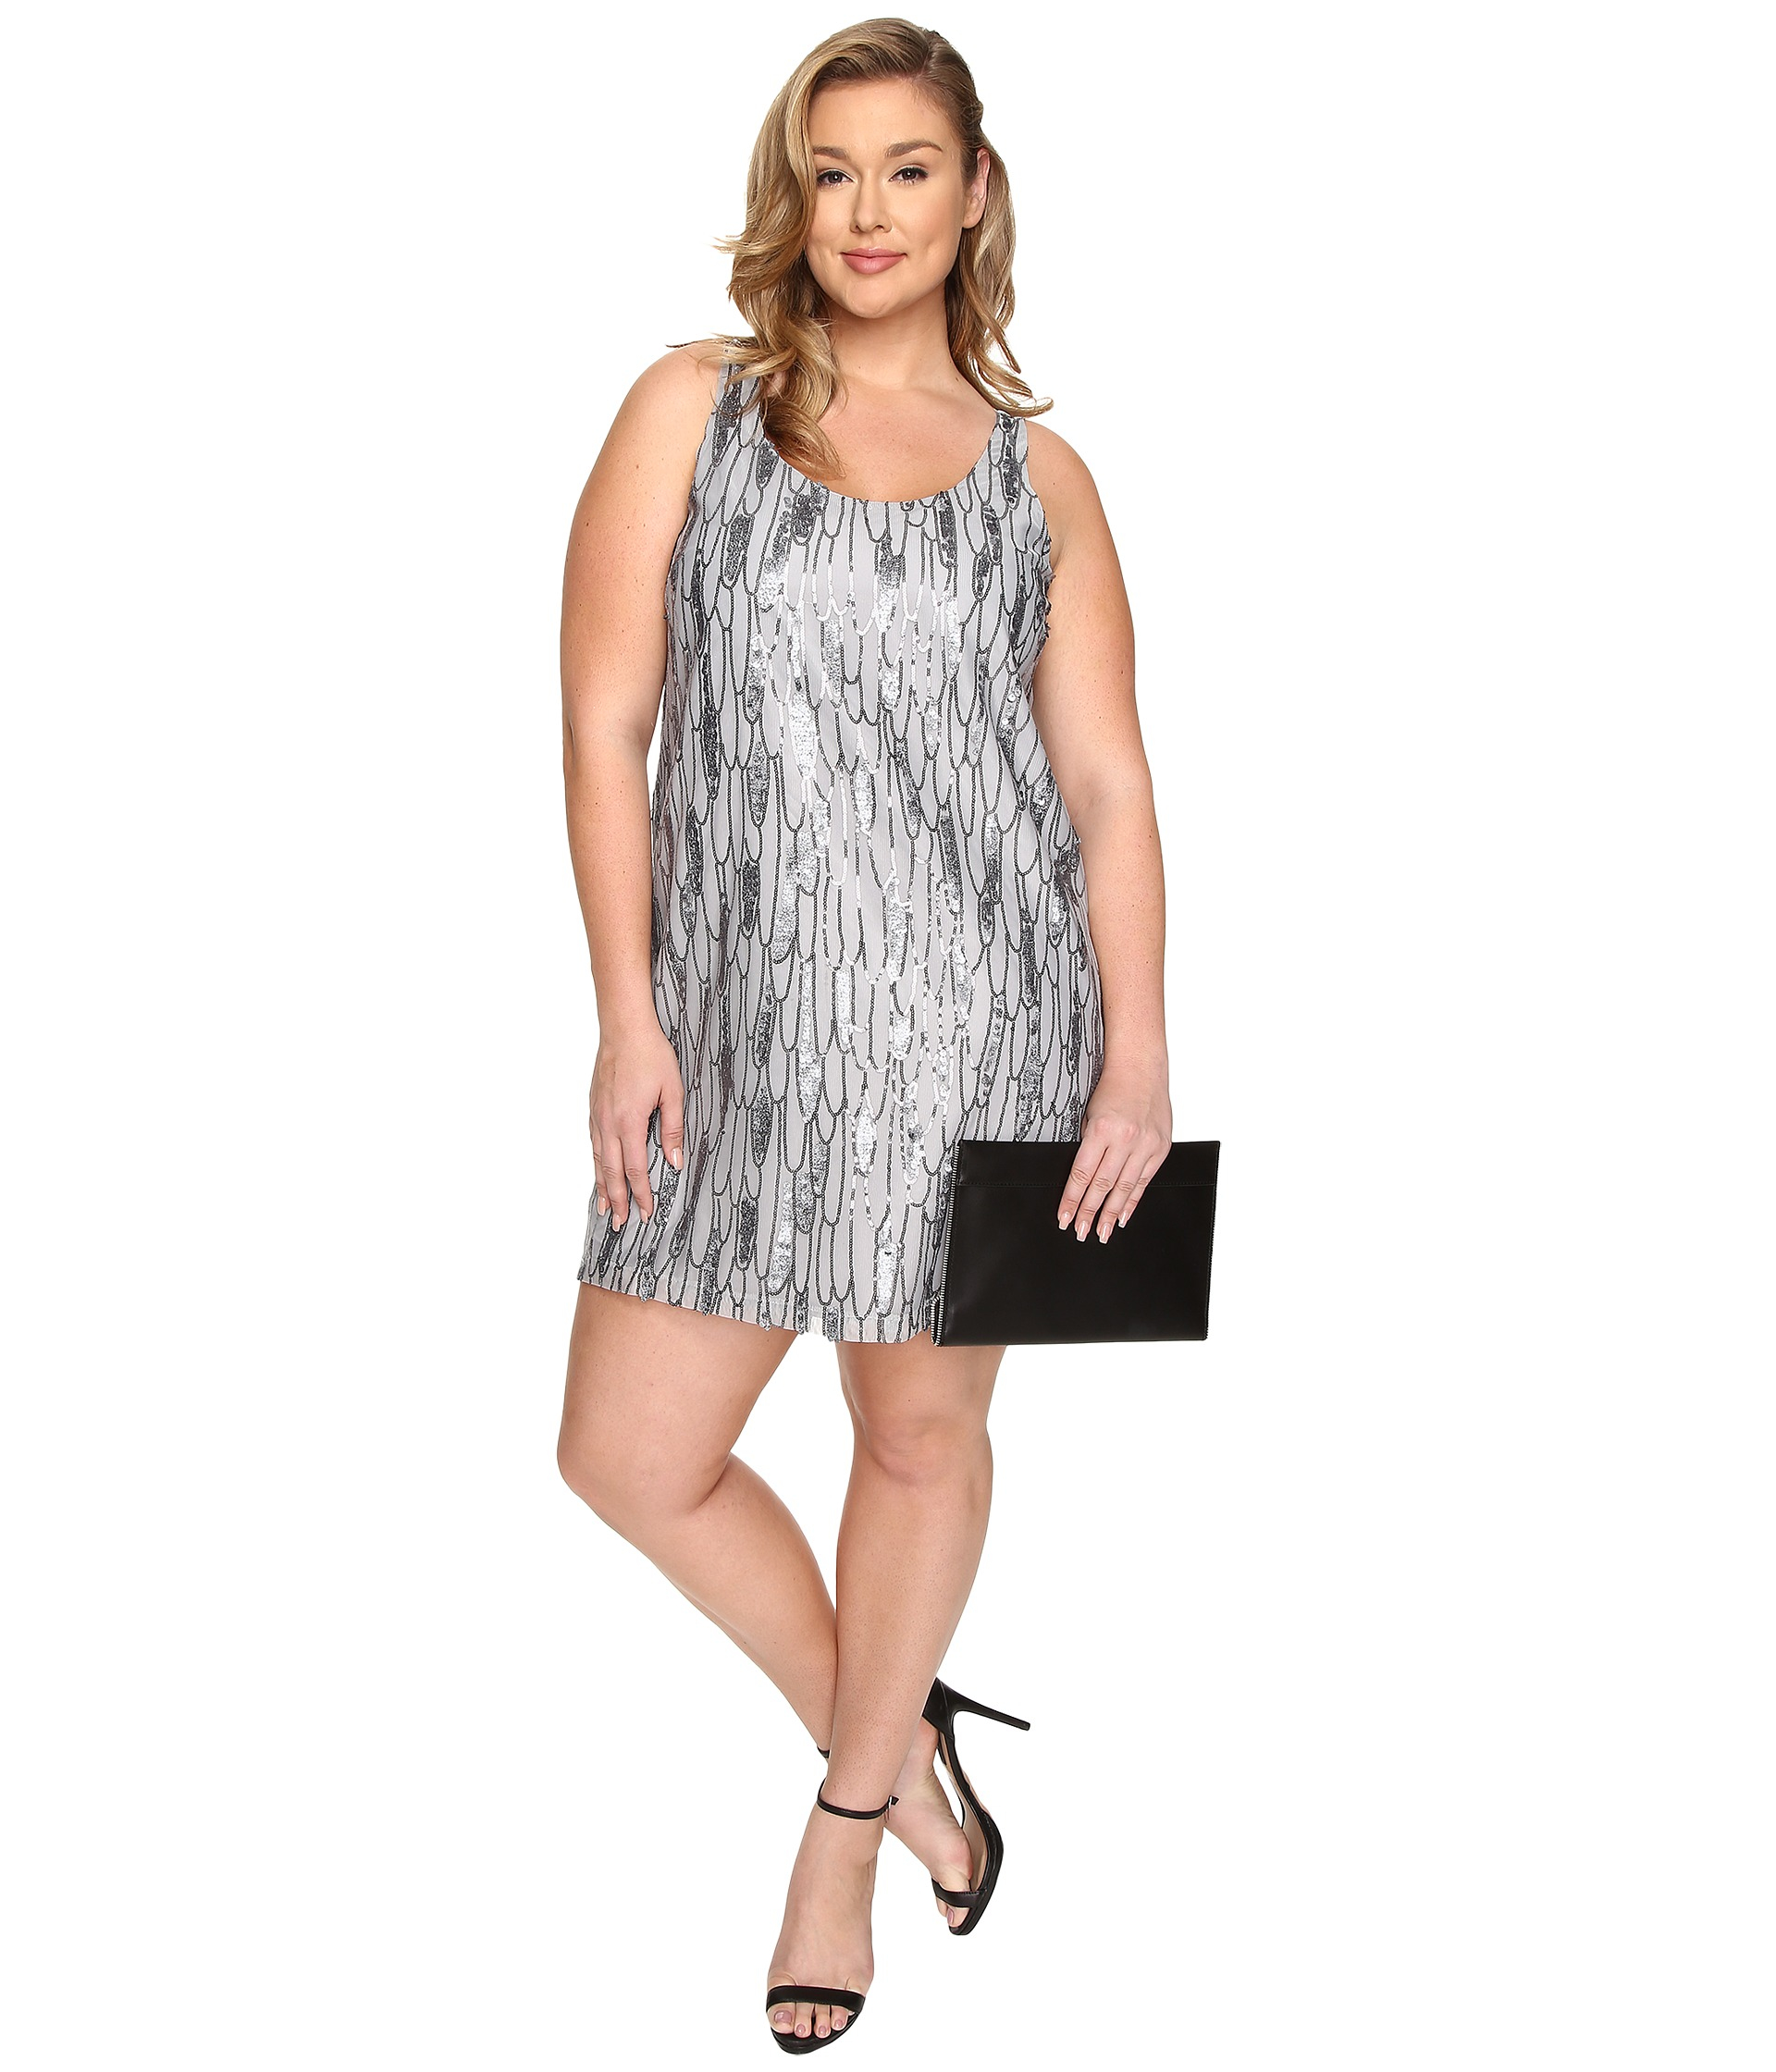 Bb dakota Plus Size Firoella Sequin Tank Dress in Metallic | Lyst